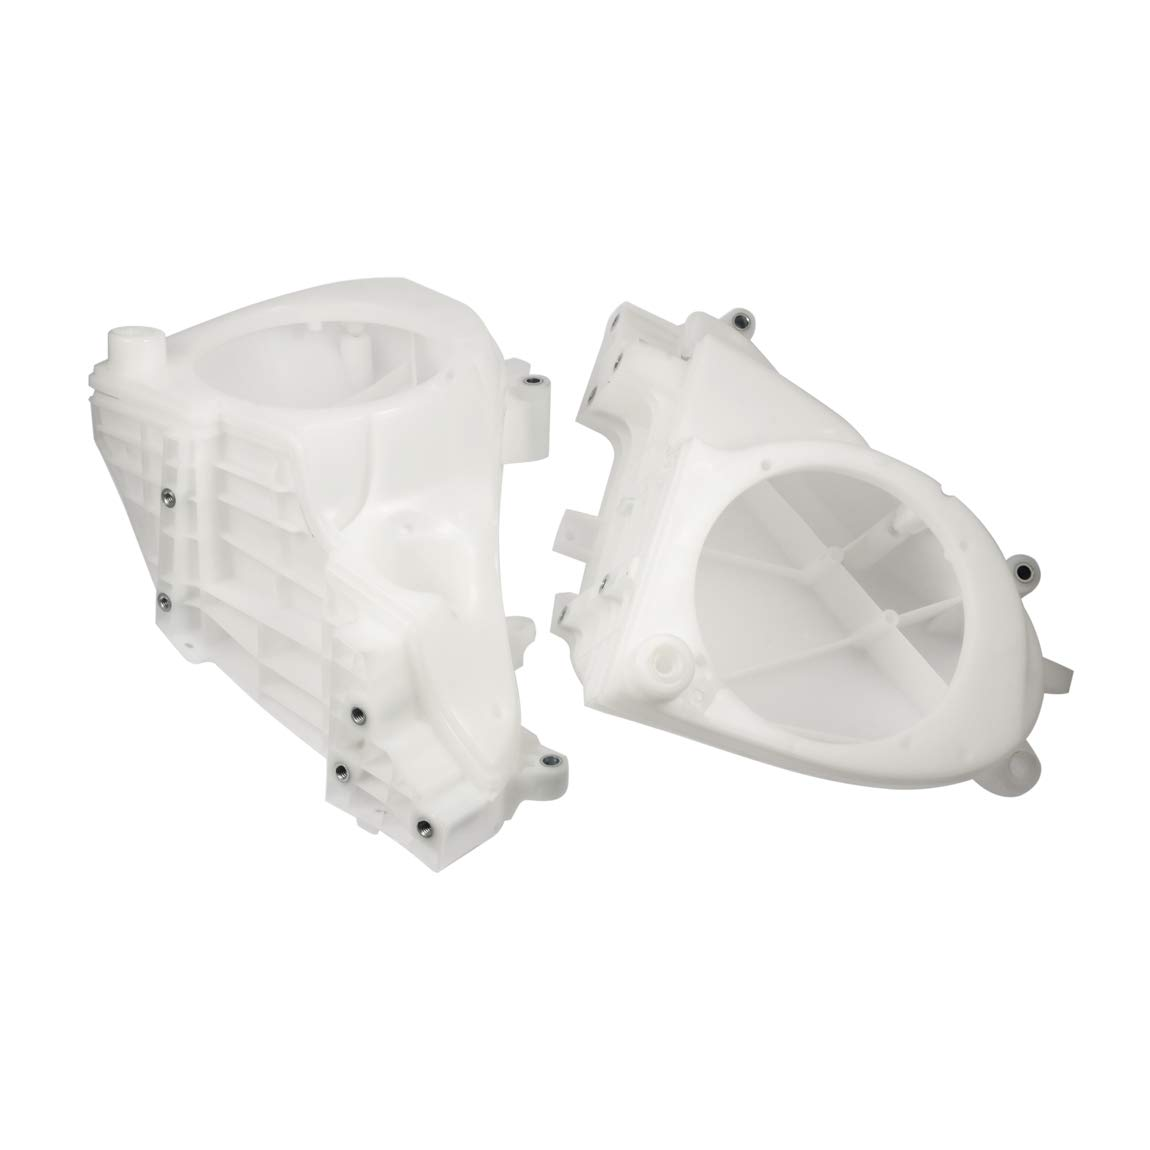 PBYM Inner Fairings Speaker Cover Enclosure Compatible for Harley Davidson Electra Glide Street Glide Ultra Limited 2014-2019 Unpainted